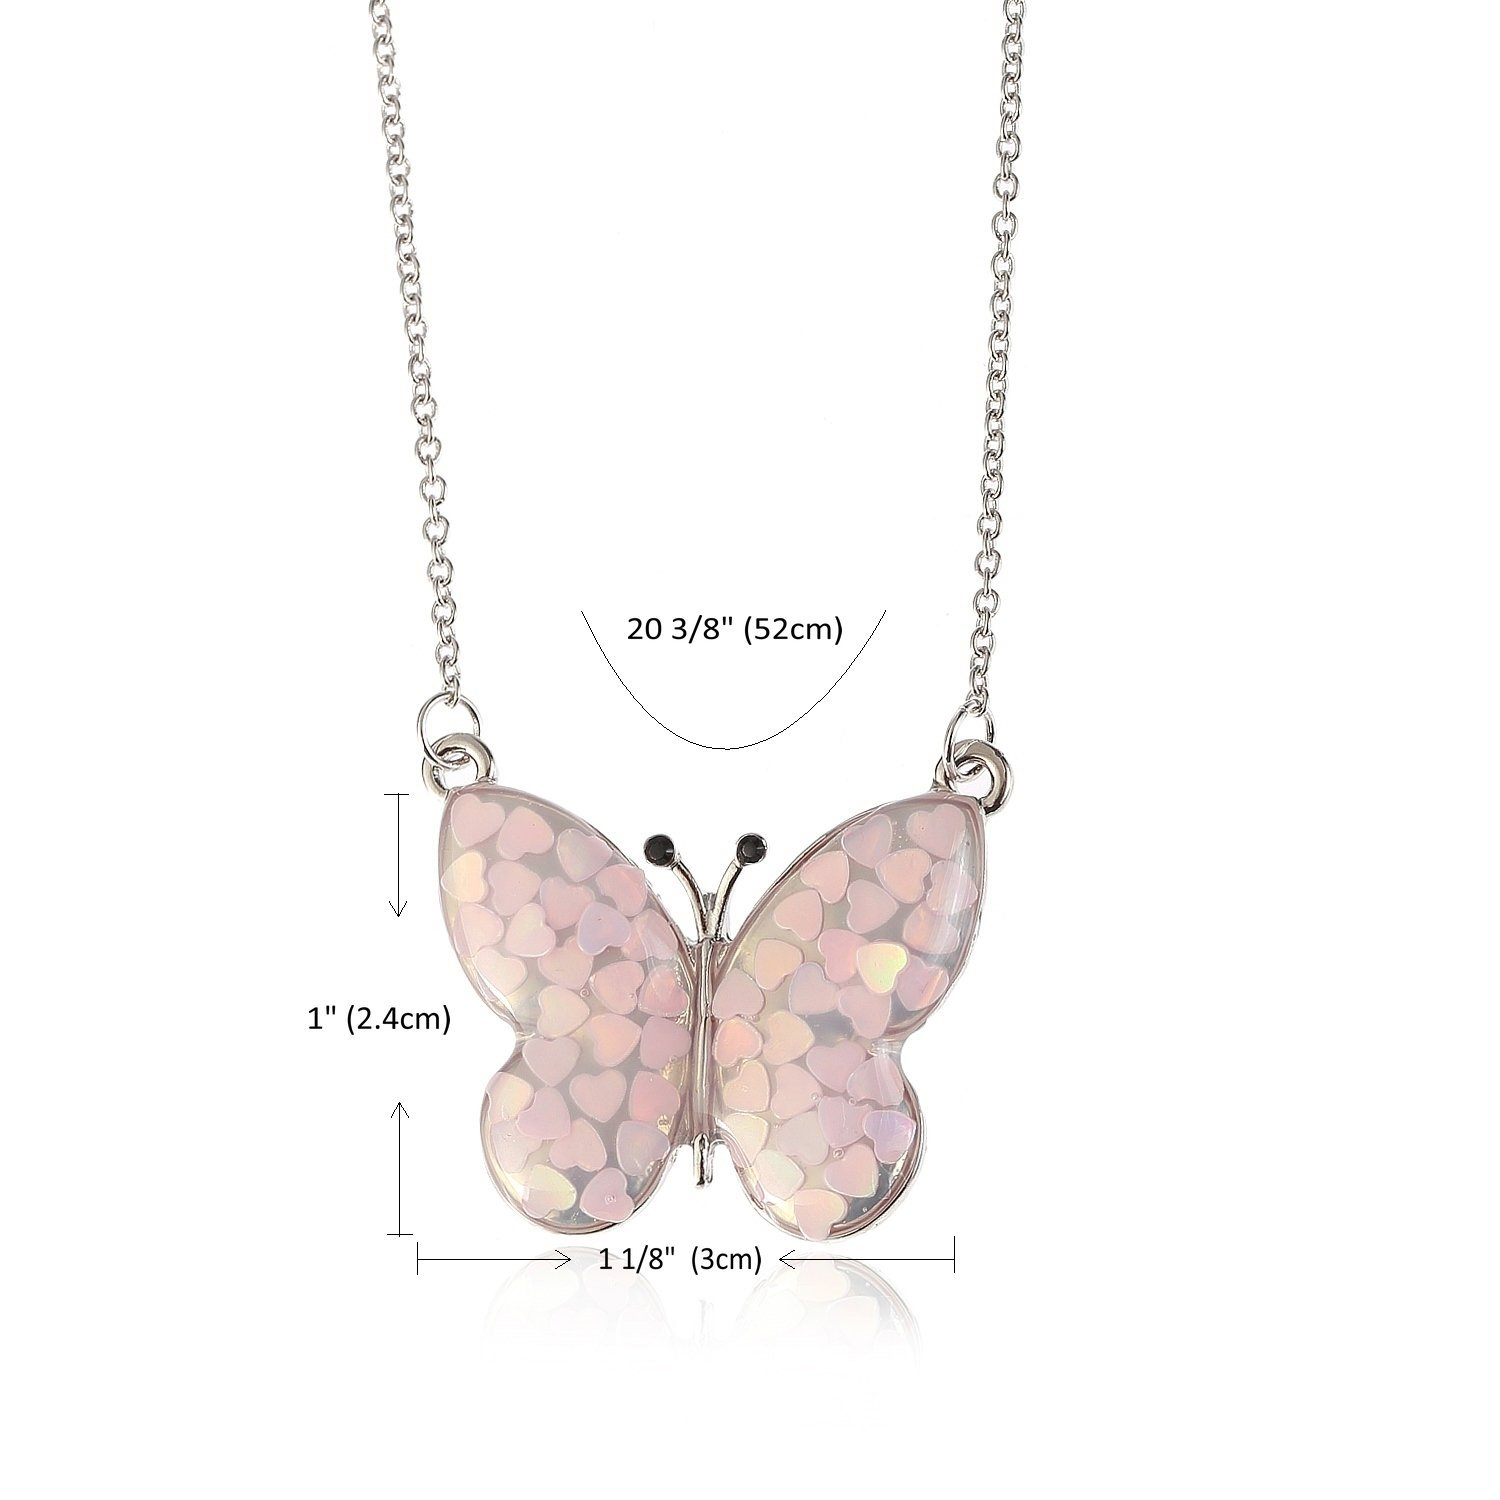 Lemonage Butterfly Necklaces for Girls Kids with Stunning Alloy Pendant Necklace, Children 3+ (Pink) by Lemonage (Image #6)